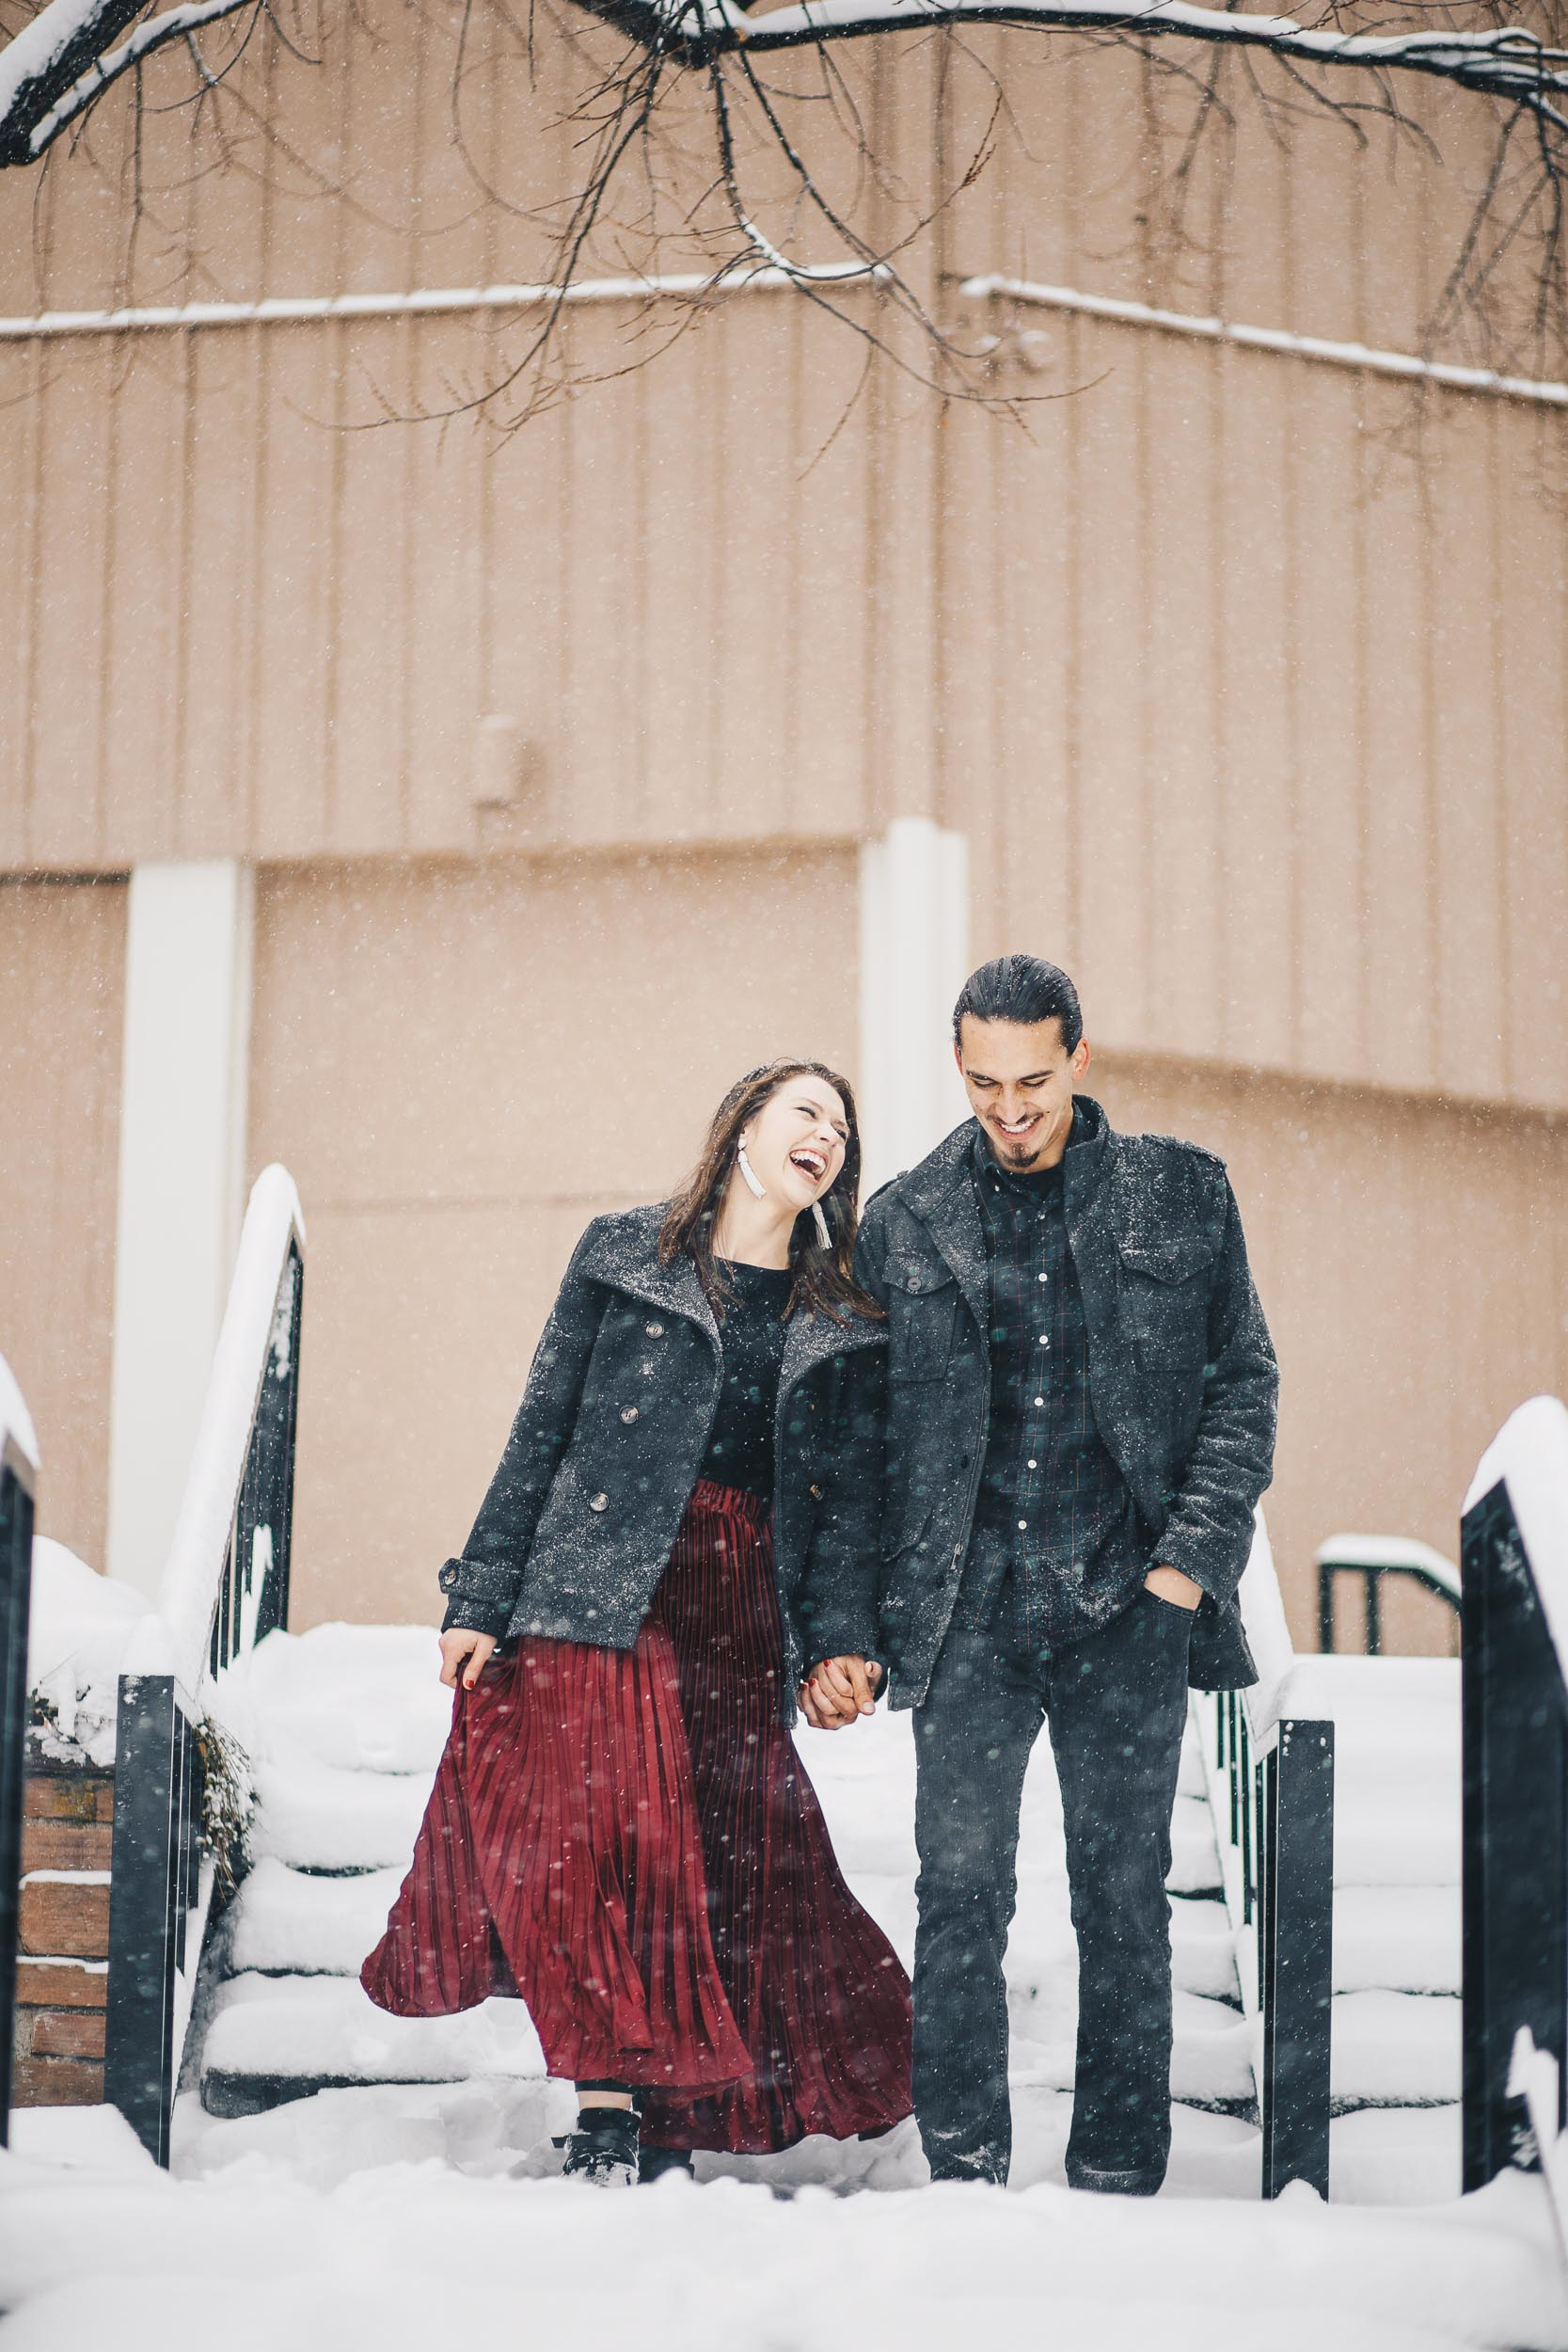 Blog-Dani and Kamran 1.21.2018-26.jpg